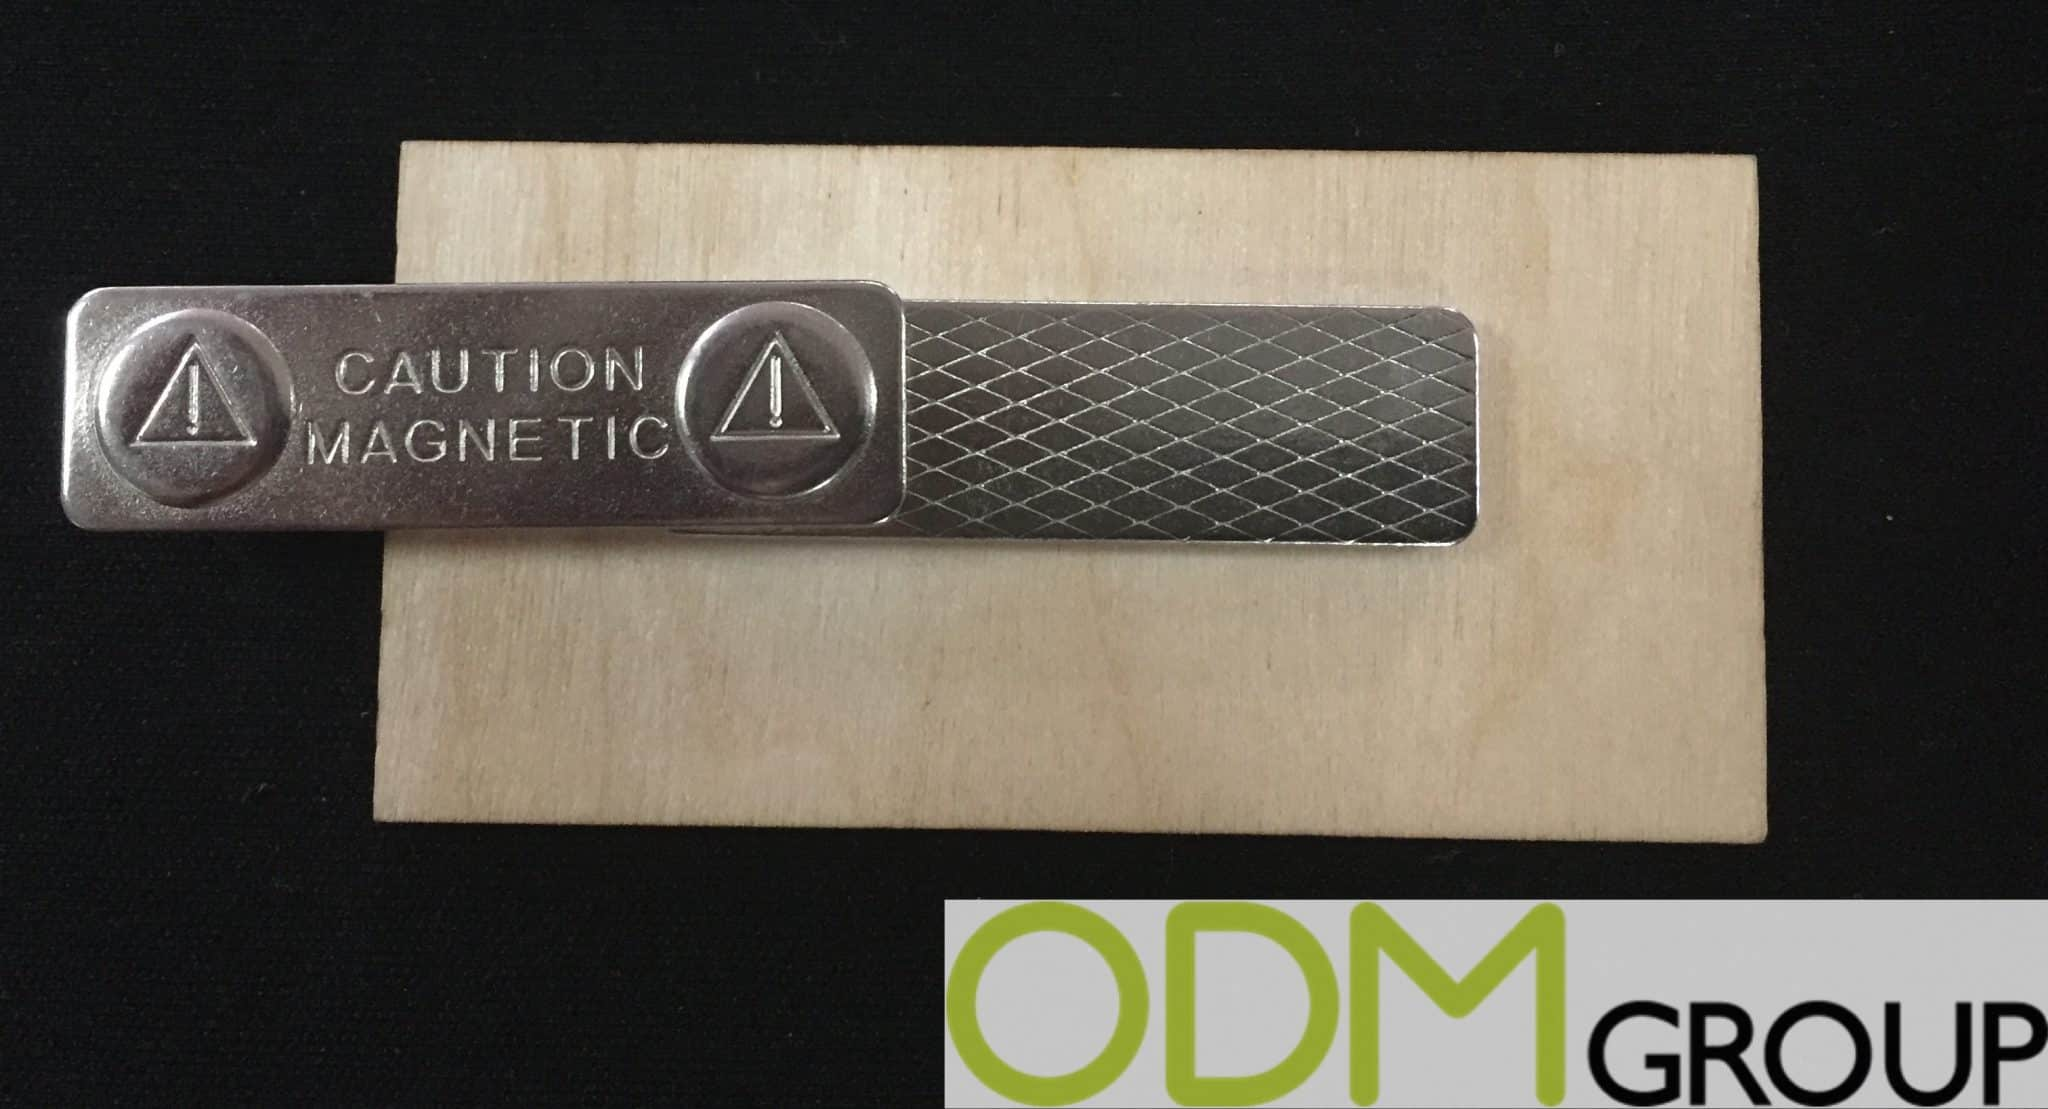 Unique Branded Wooden Badge offered by Mopub